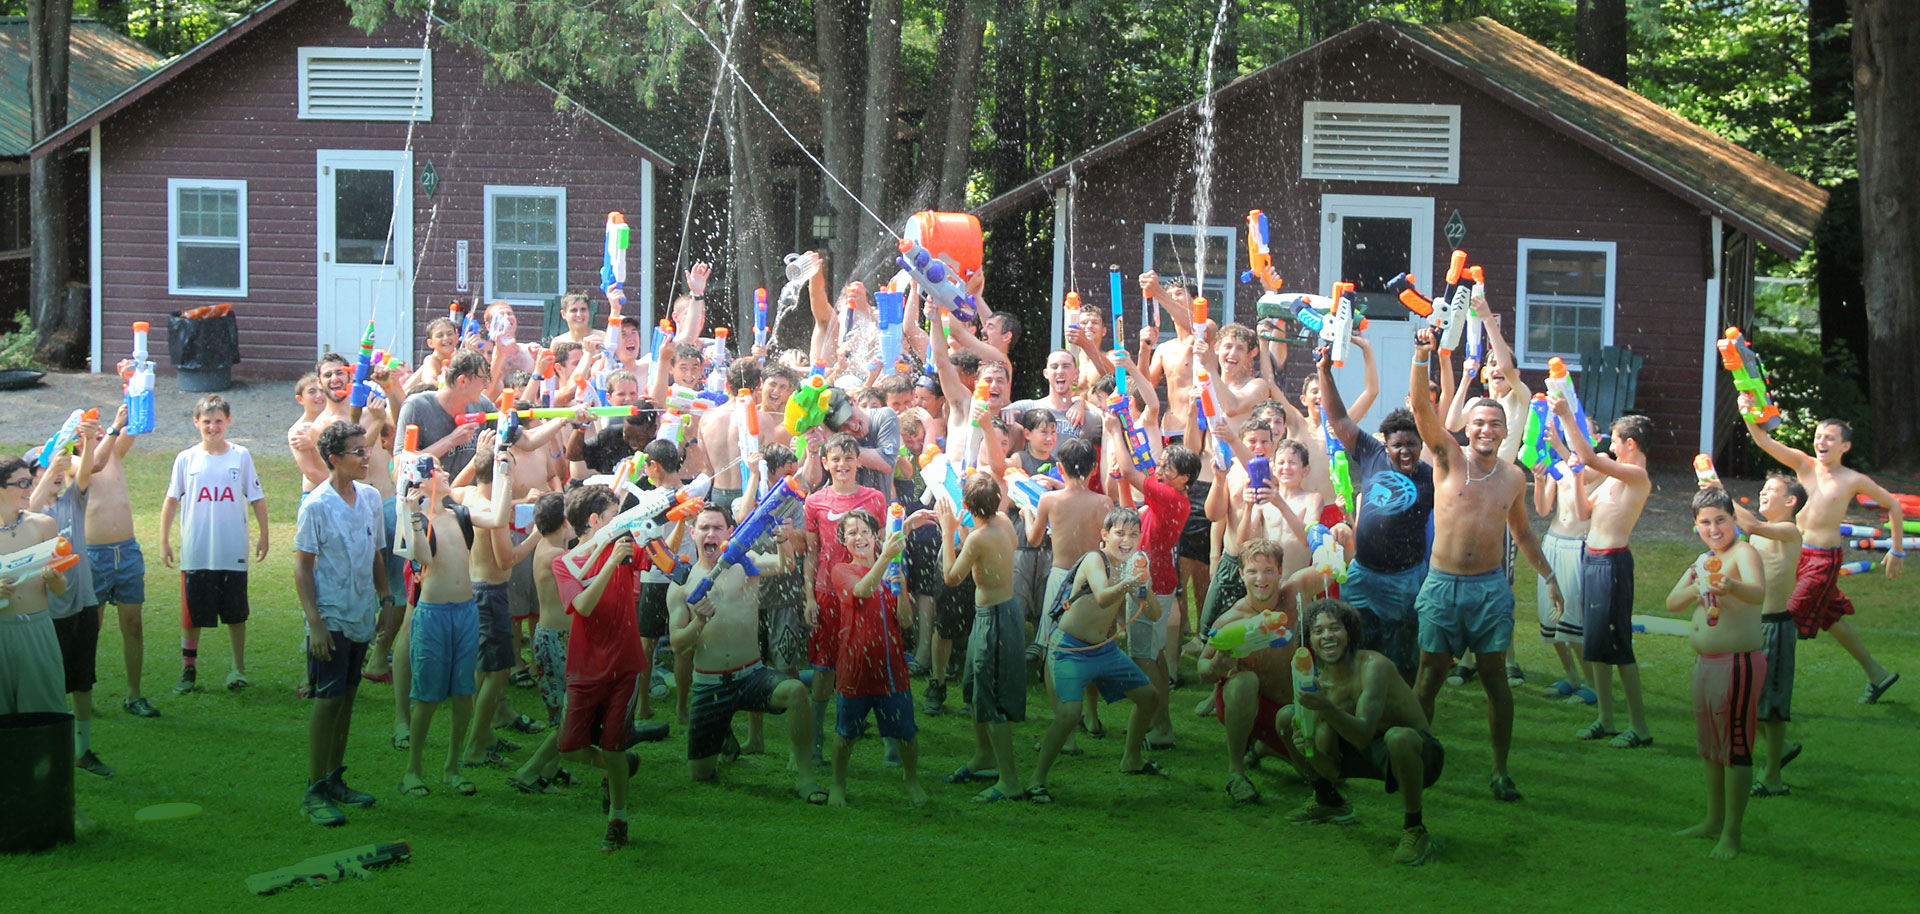 Dates and Fees information for Brant Lake Summer Camp in New York